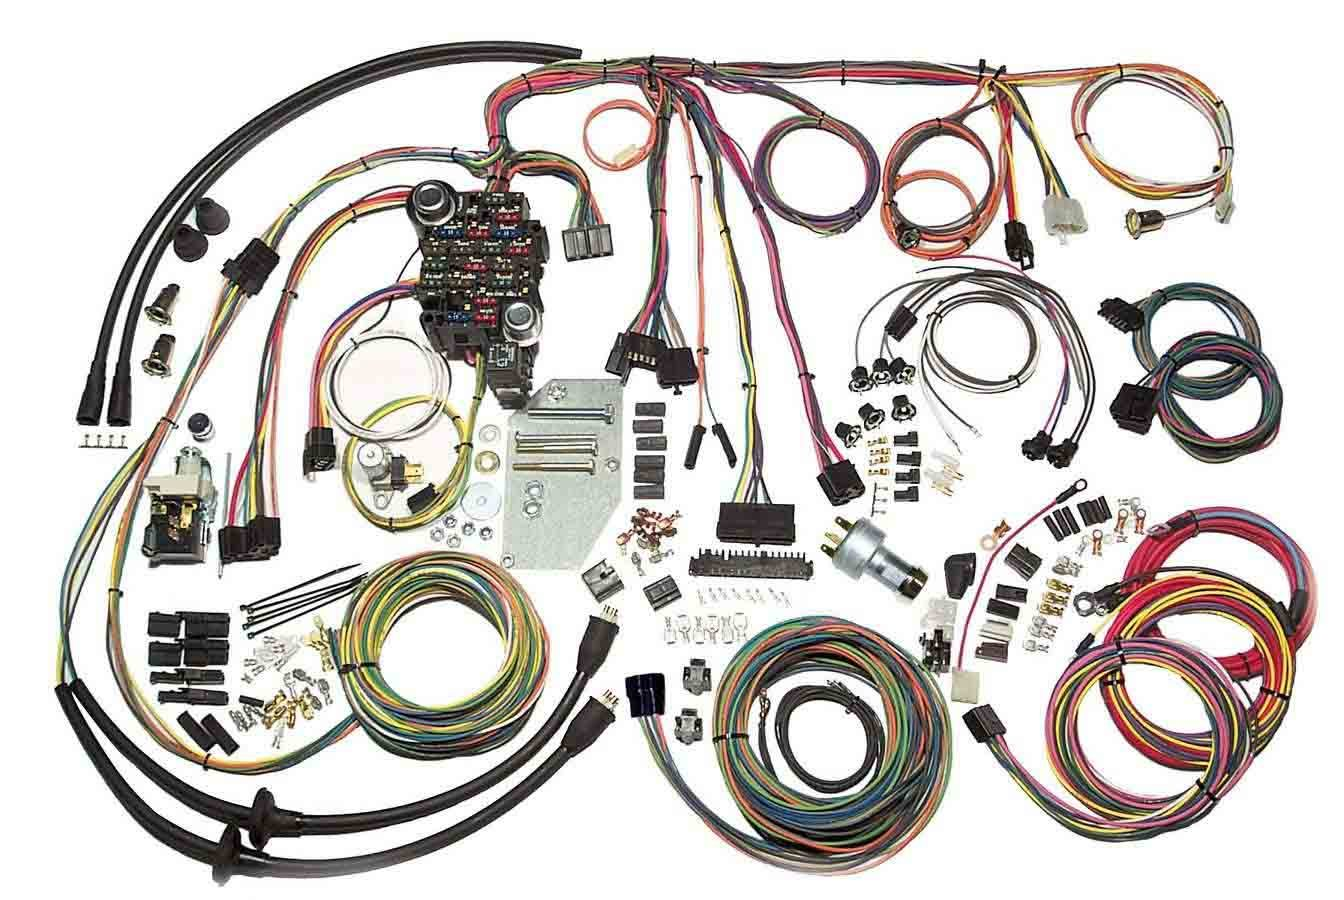 American Autowire 500423 Chevy Fullsize 1955-56 Classic Update Wiring Harness